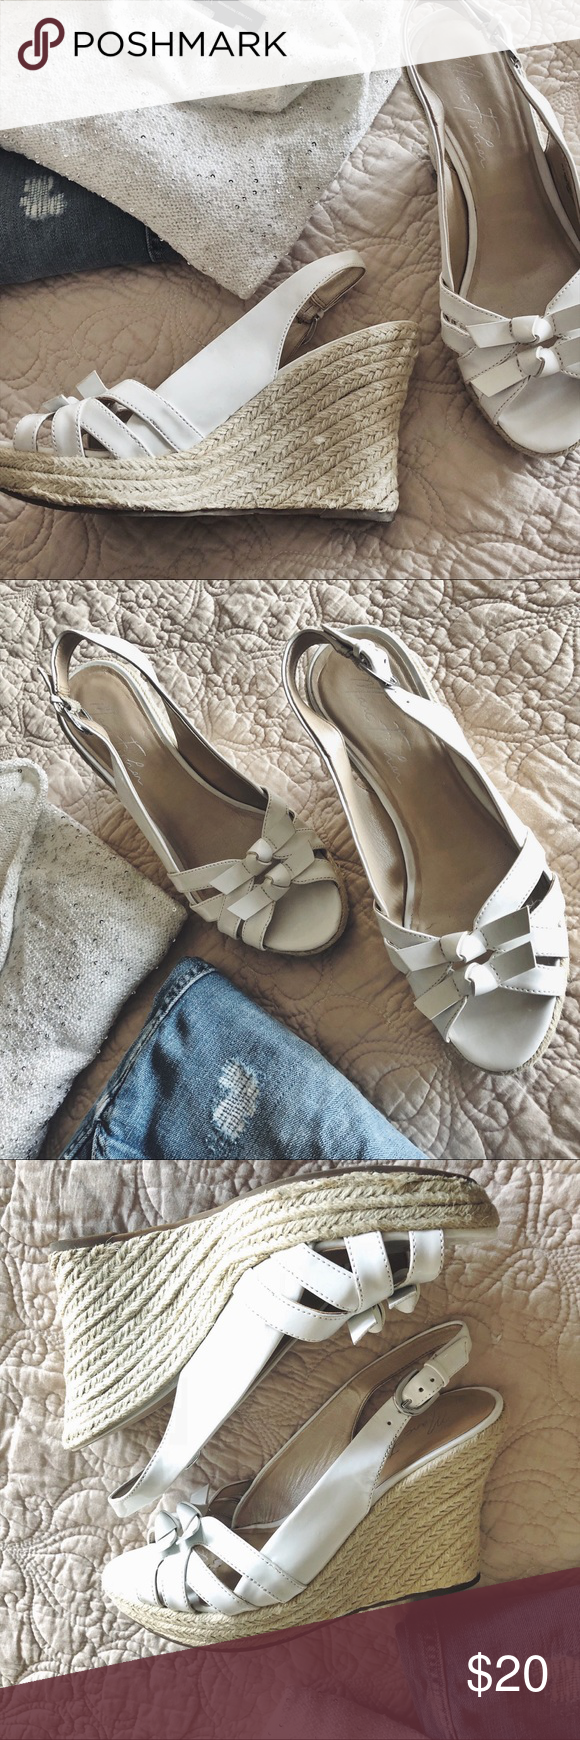 Marc Fishar Wedge Heels White 8 5 Wedge Heels Marc Fisher Shoes Clothes Design